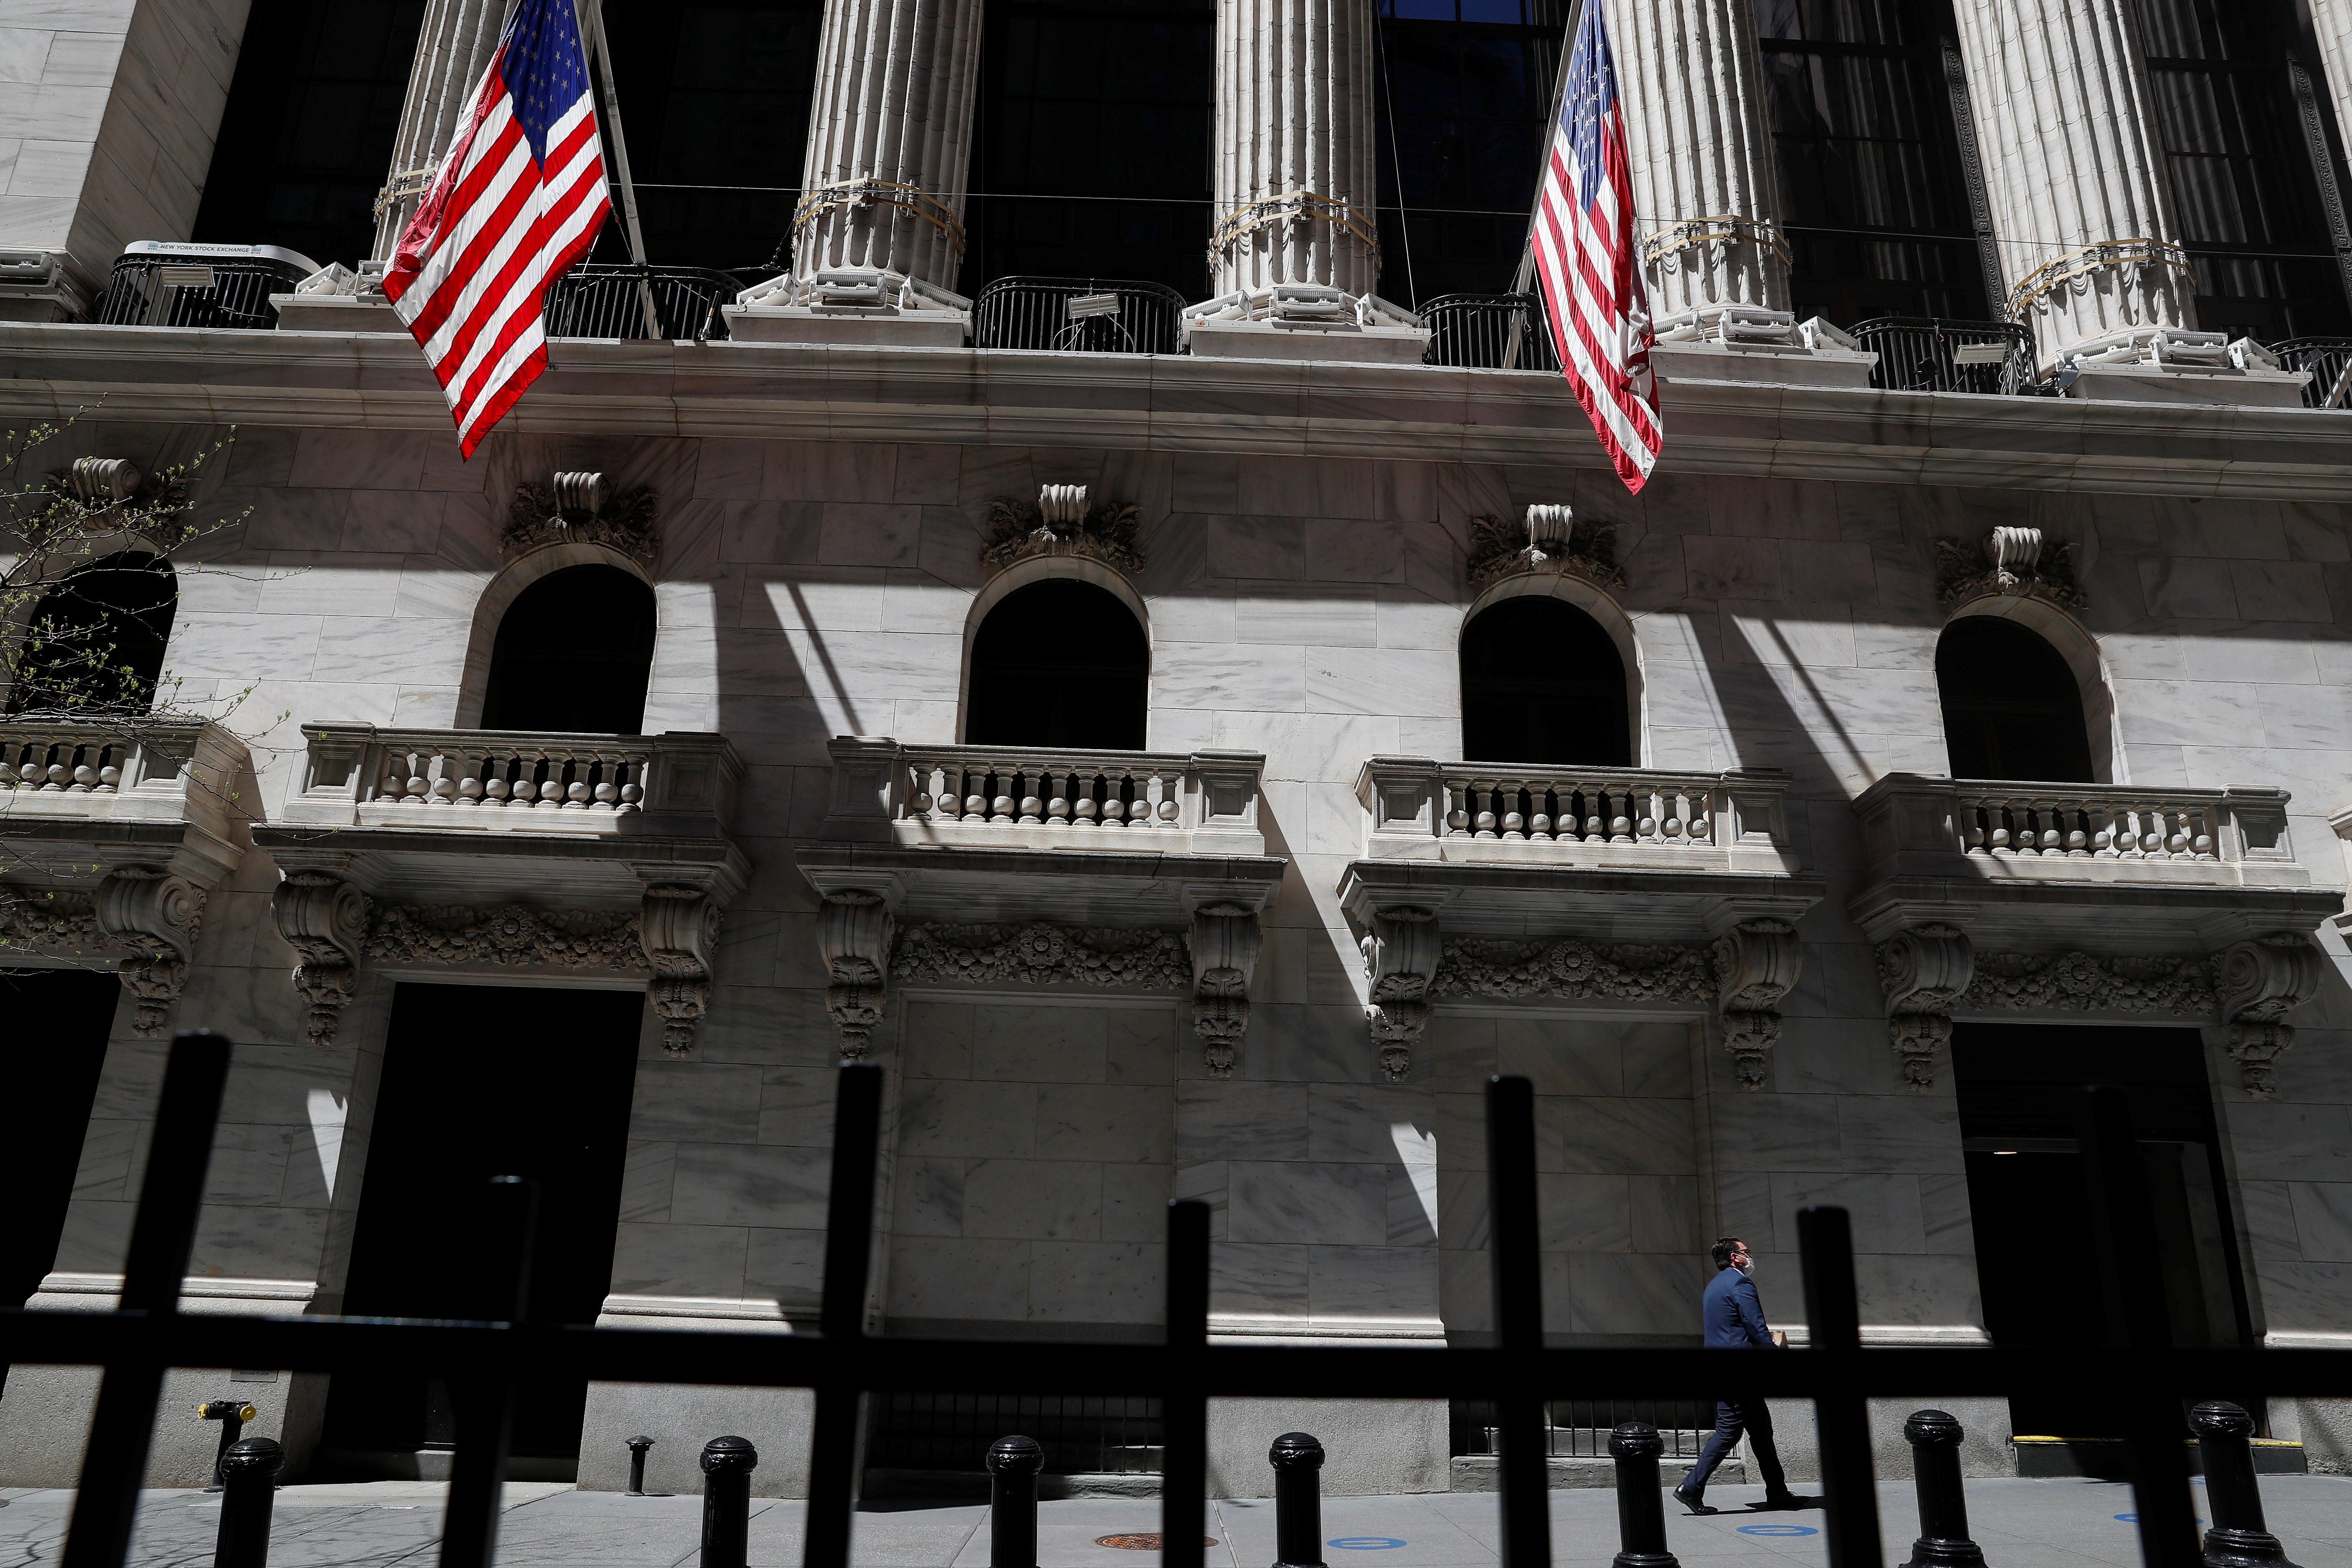 A trader walks outside the New York Stock Exchange in New York City, U.S., April 26, 2021. REUTERS/Shannon Stapleton